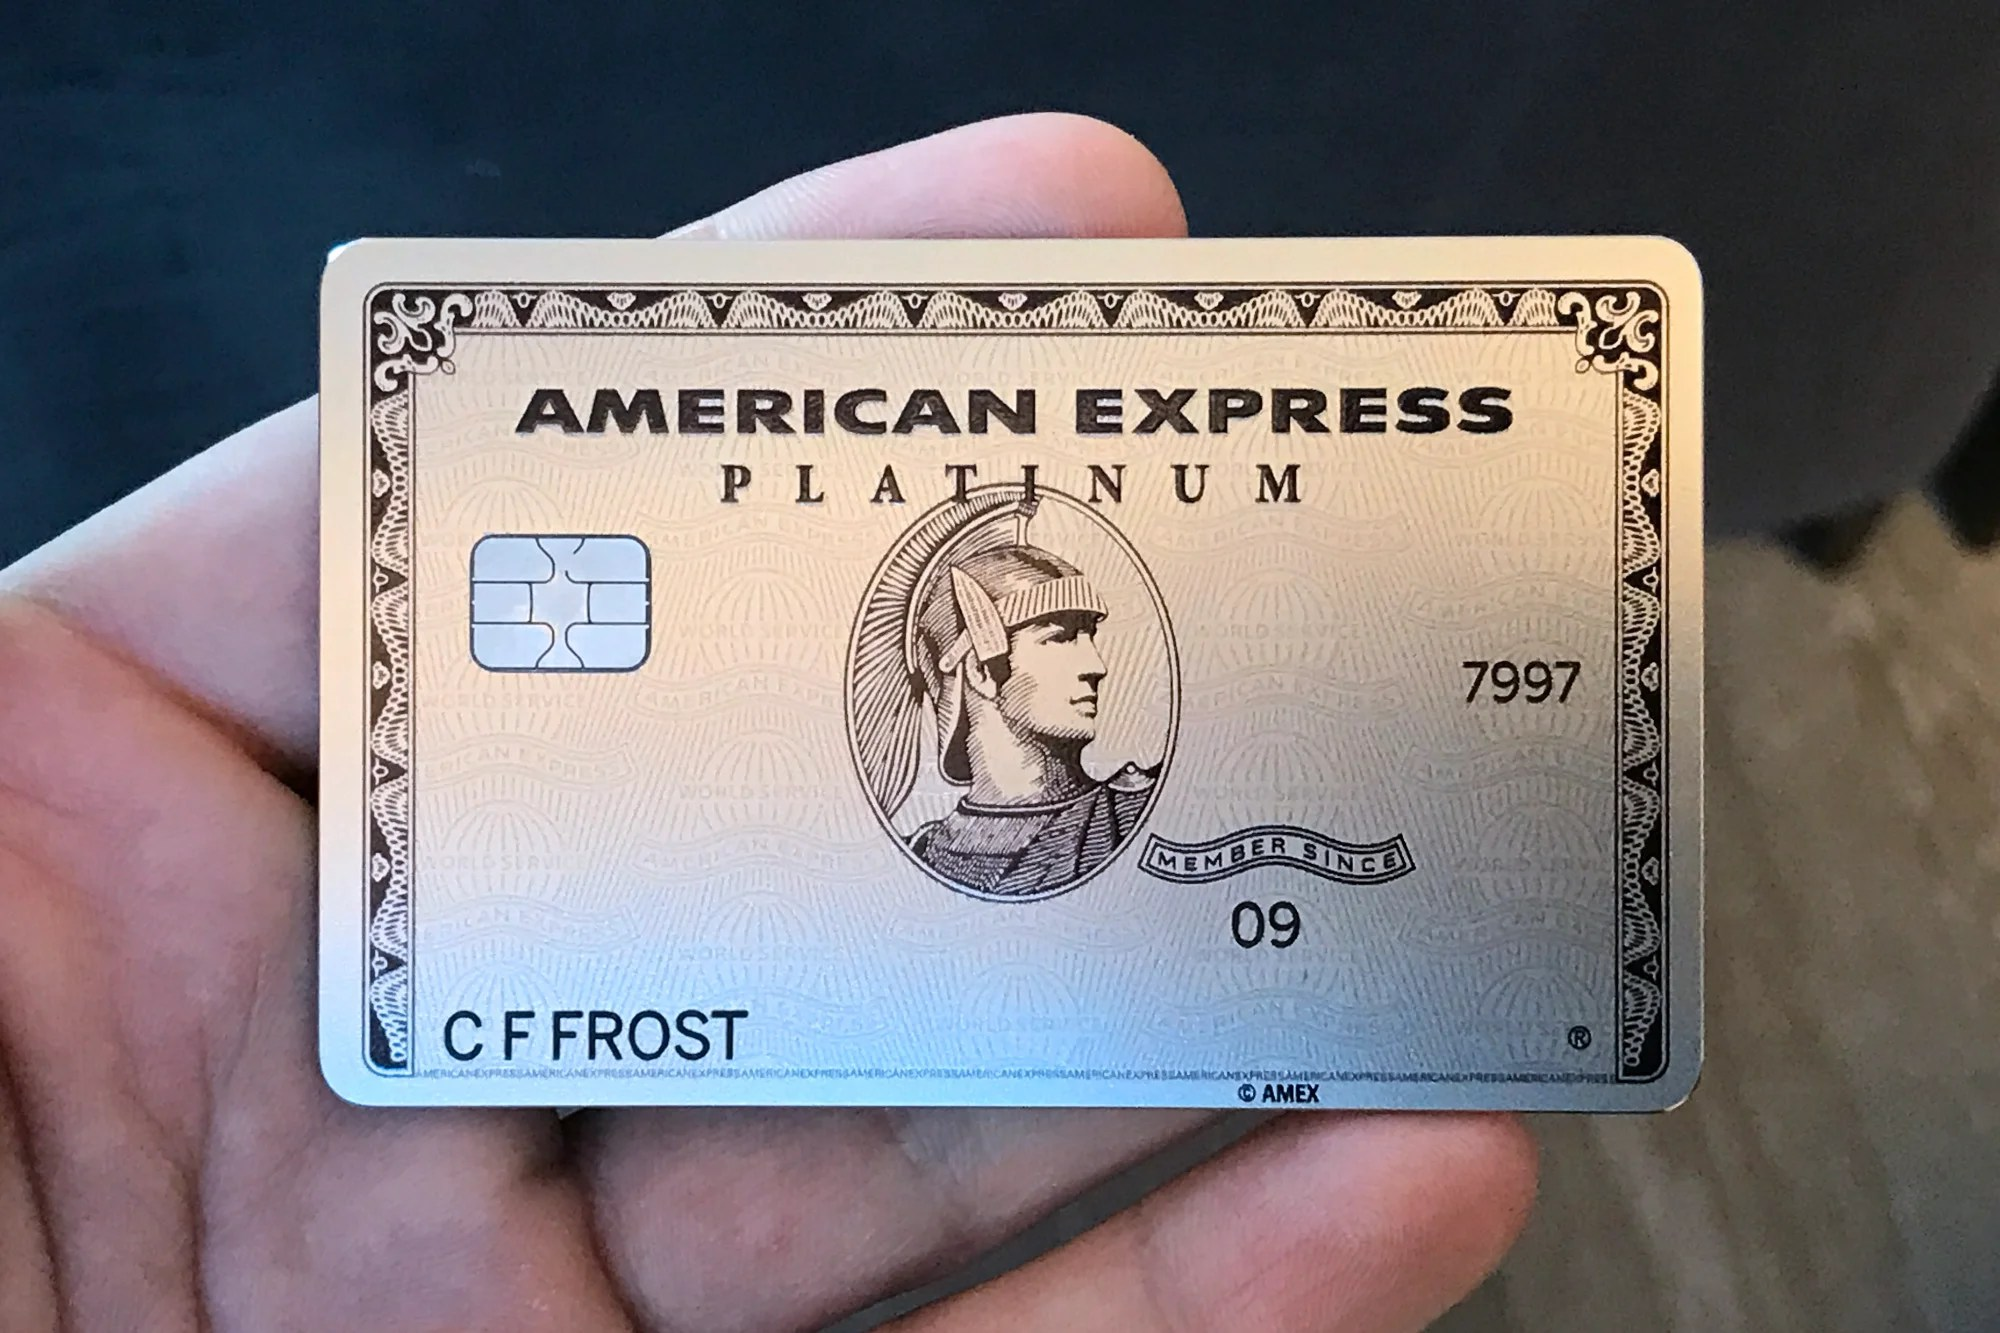 Earn 12k Points With This Elevated Amex Platinum Offer